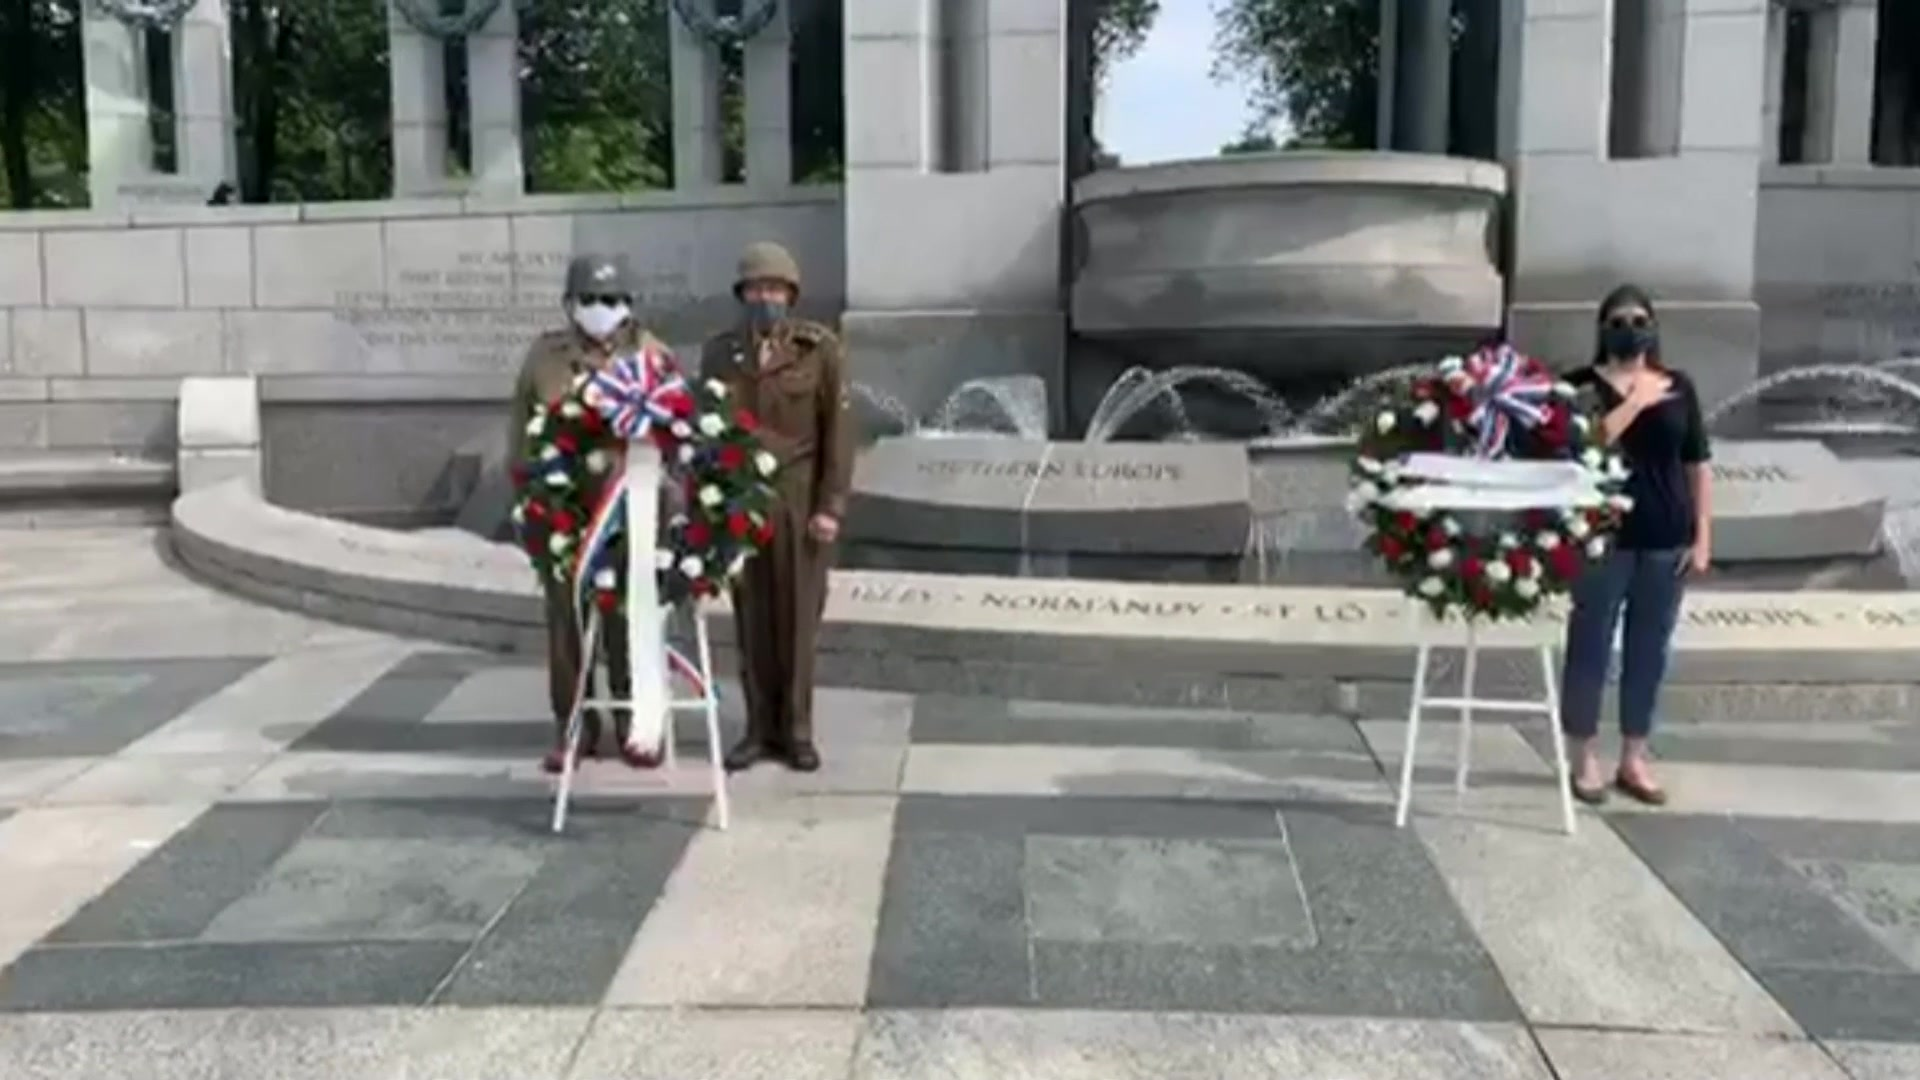 Three people, two in period military uniforms, stand by two wreaths at a memorial.